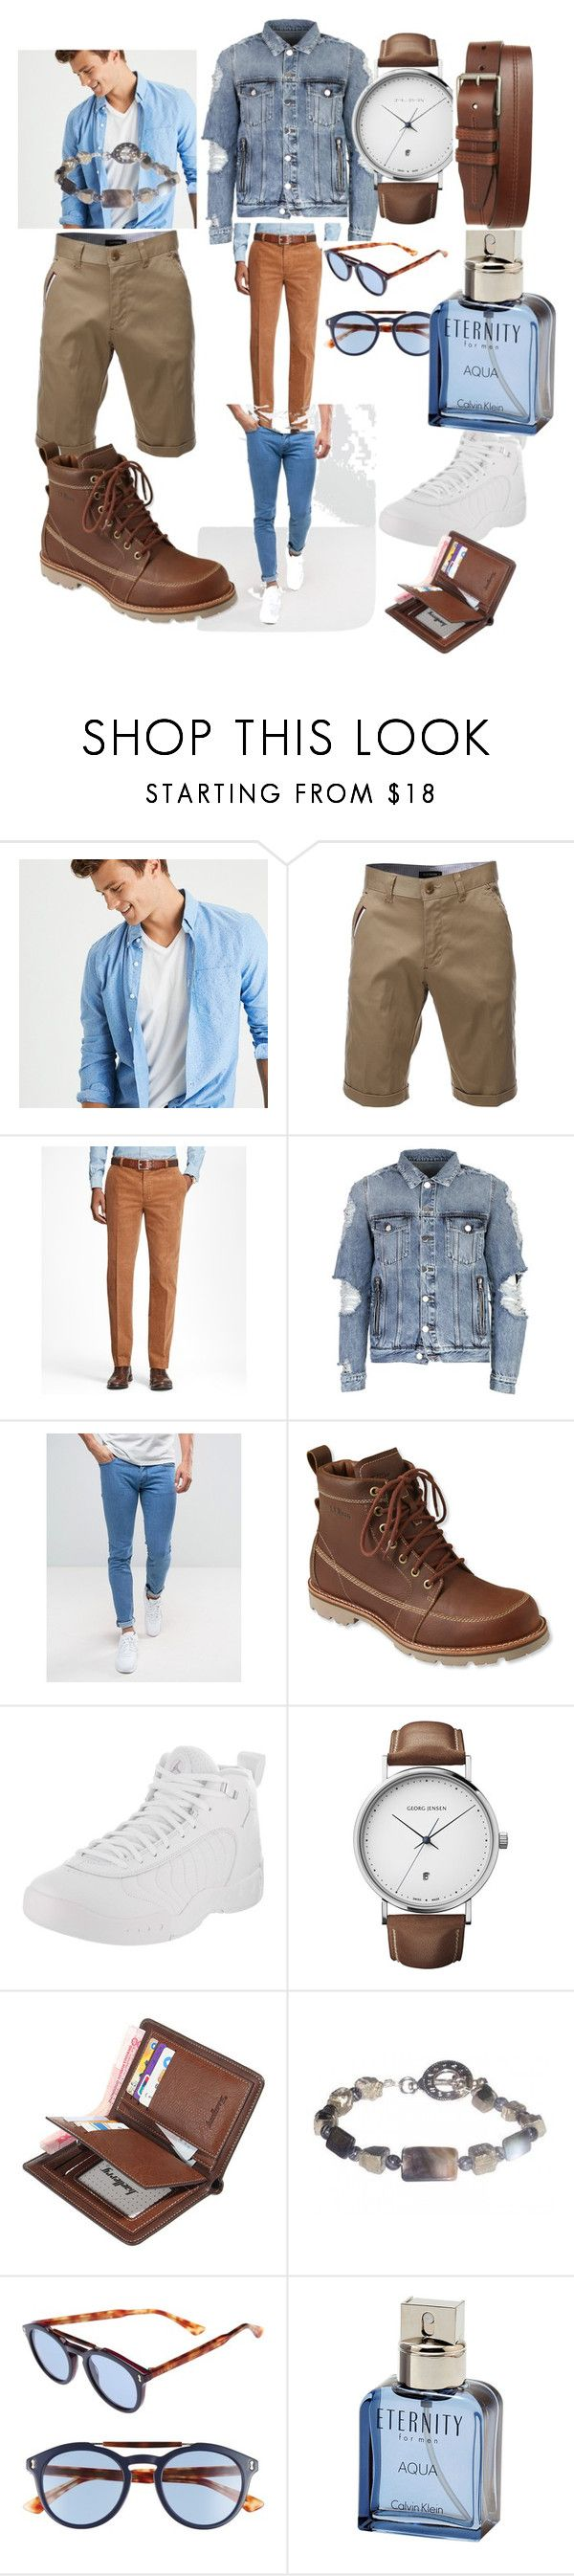 """""""# no body#like#you#"""" by hannazakaria ❤ liked on Polyvore featuring American Eagle Outfitters, Brooks Brothers, Balmain, Diesel, L.L.Bean, NIKE, Georg Jensen, Gucci, Calvin Klein and 1901"""